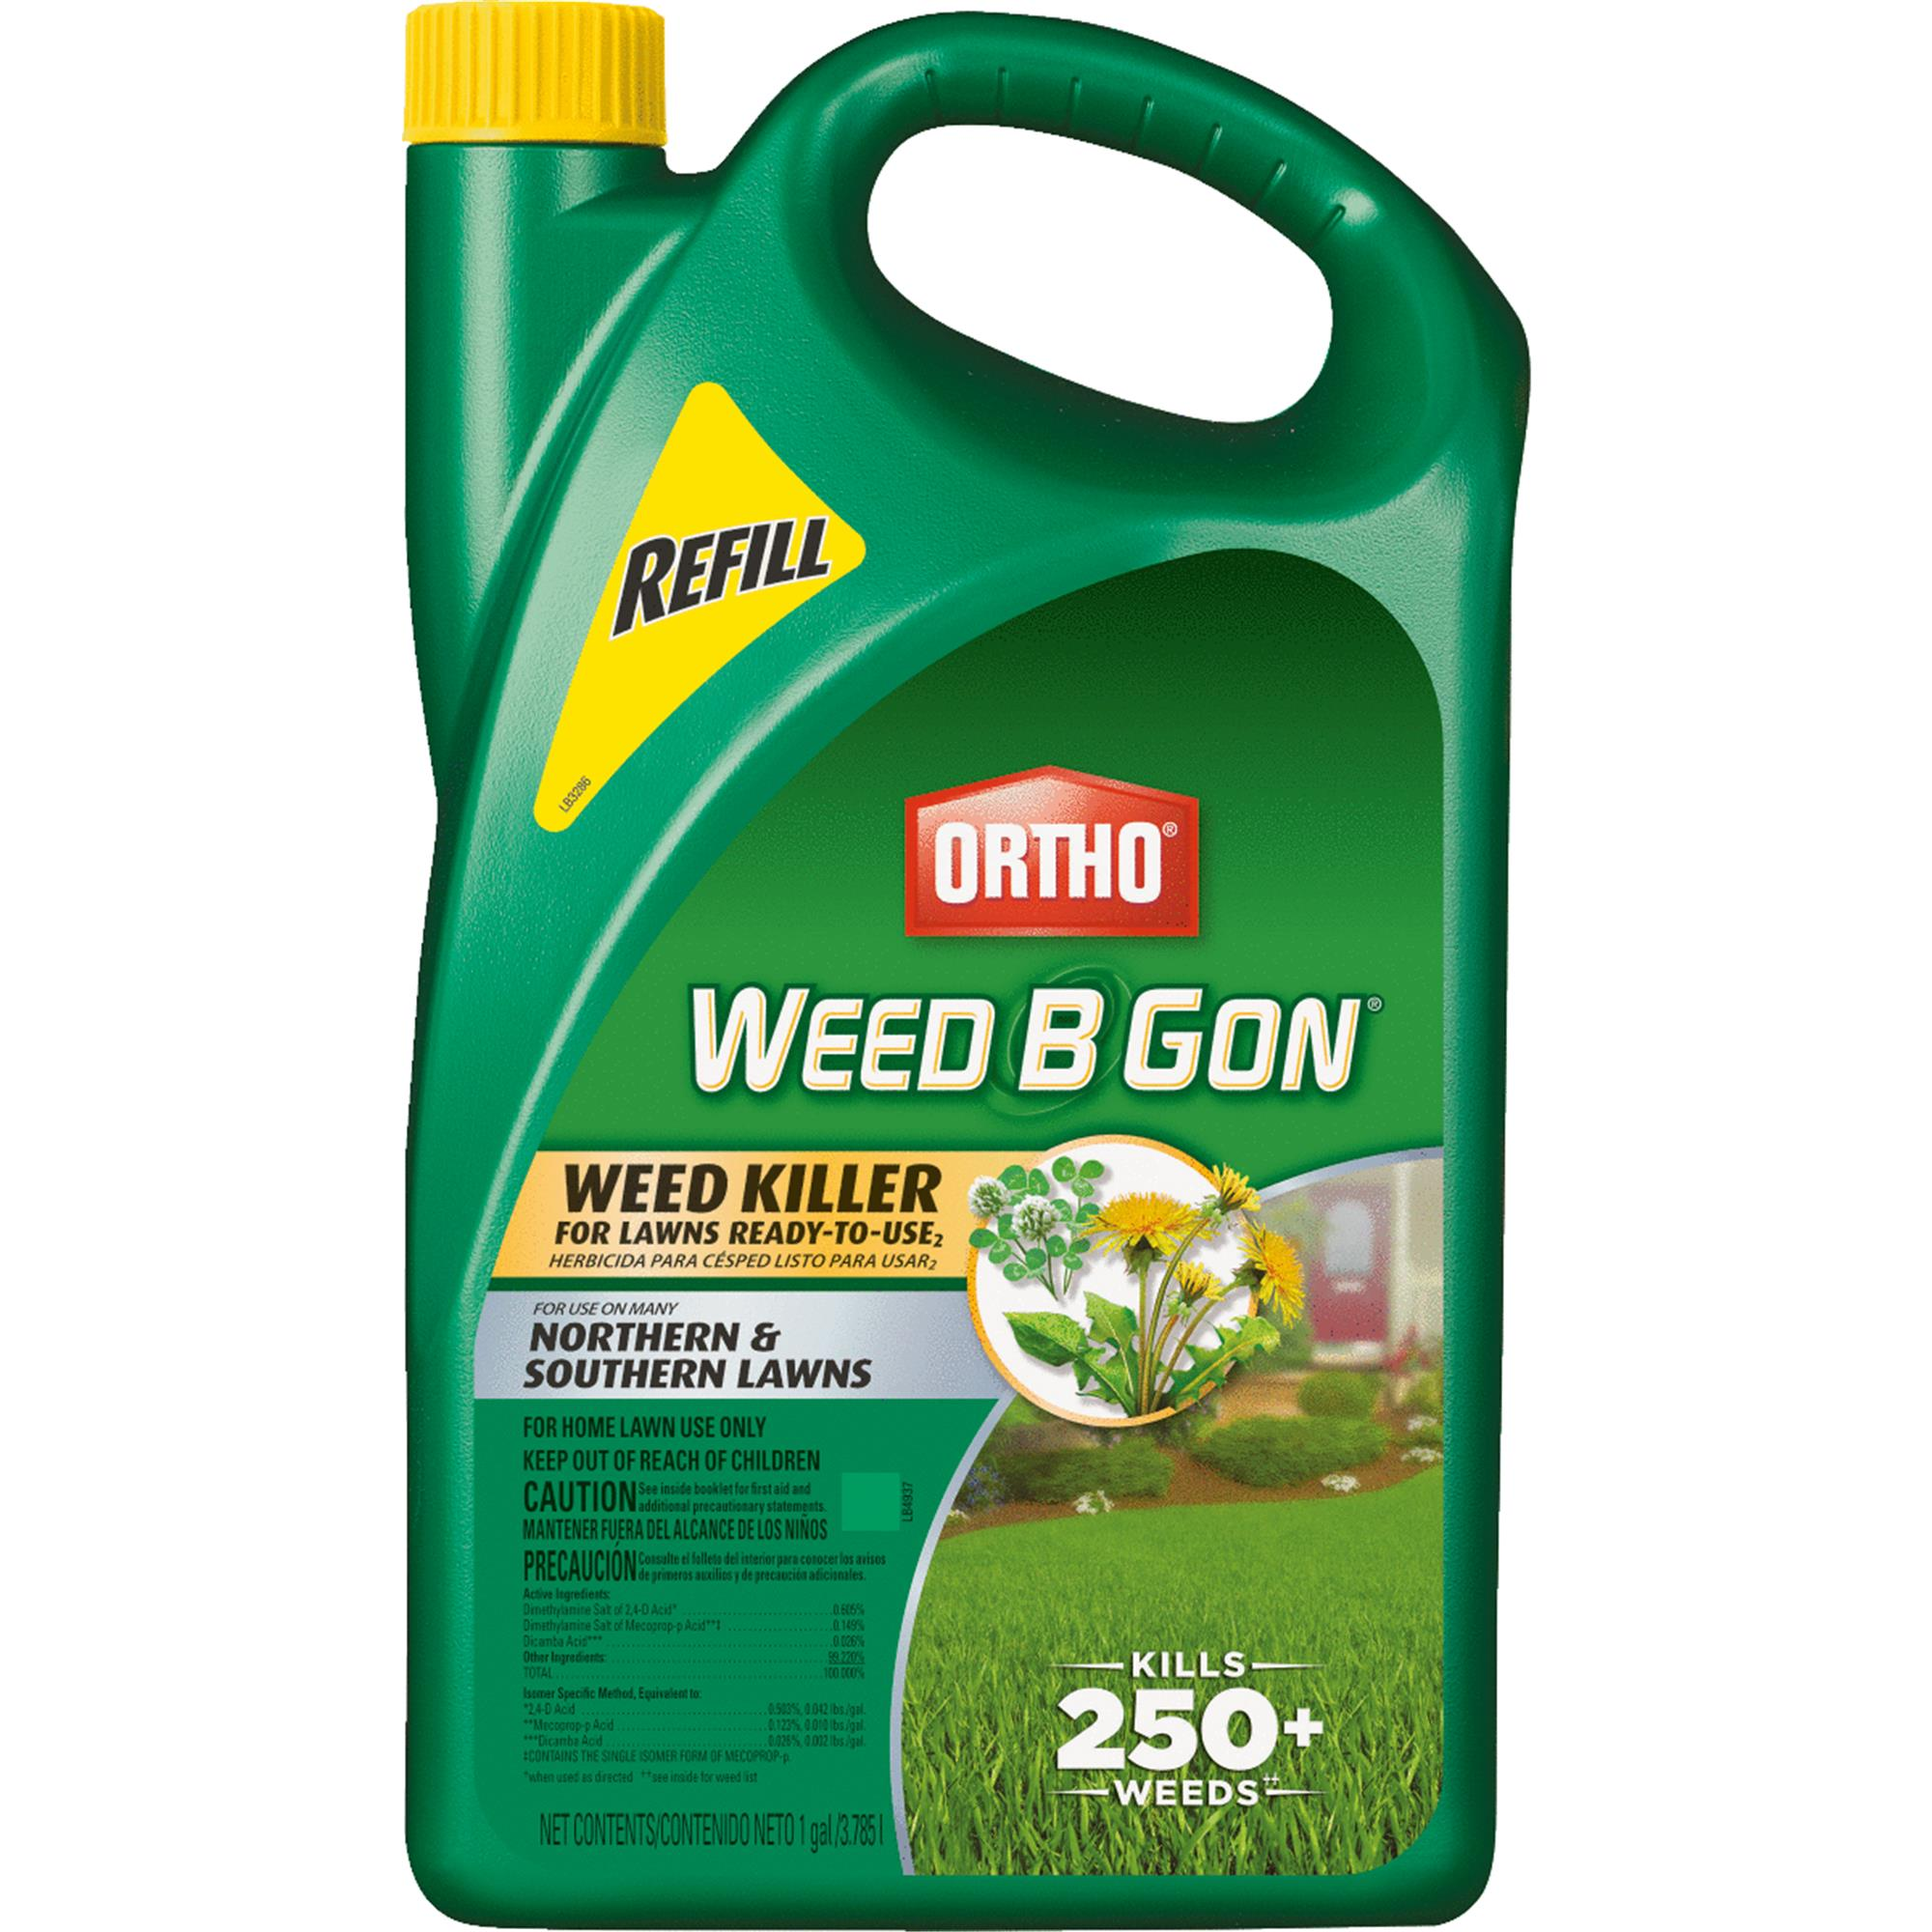 Ortho Weed B Gon Weed Killer For Lawns Ready-To-Use2 Refill 1 gal